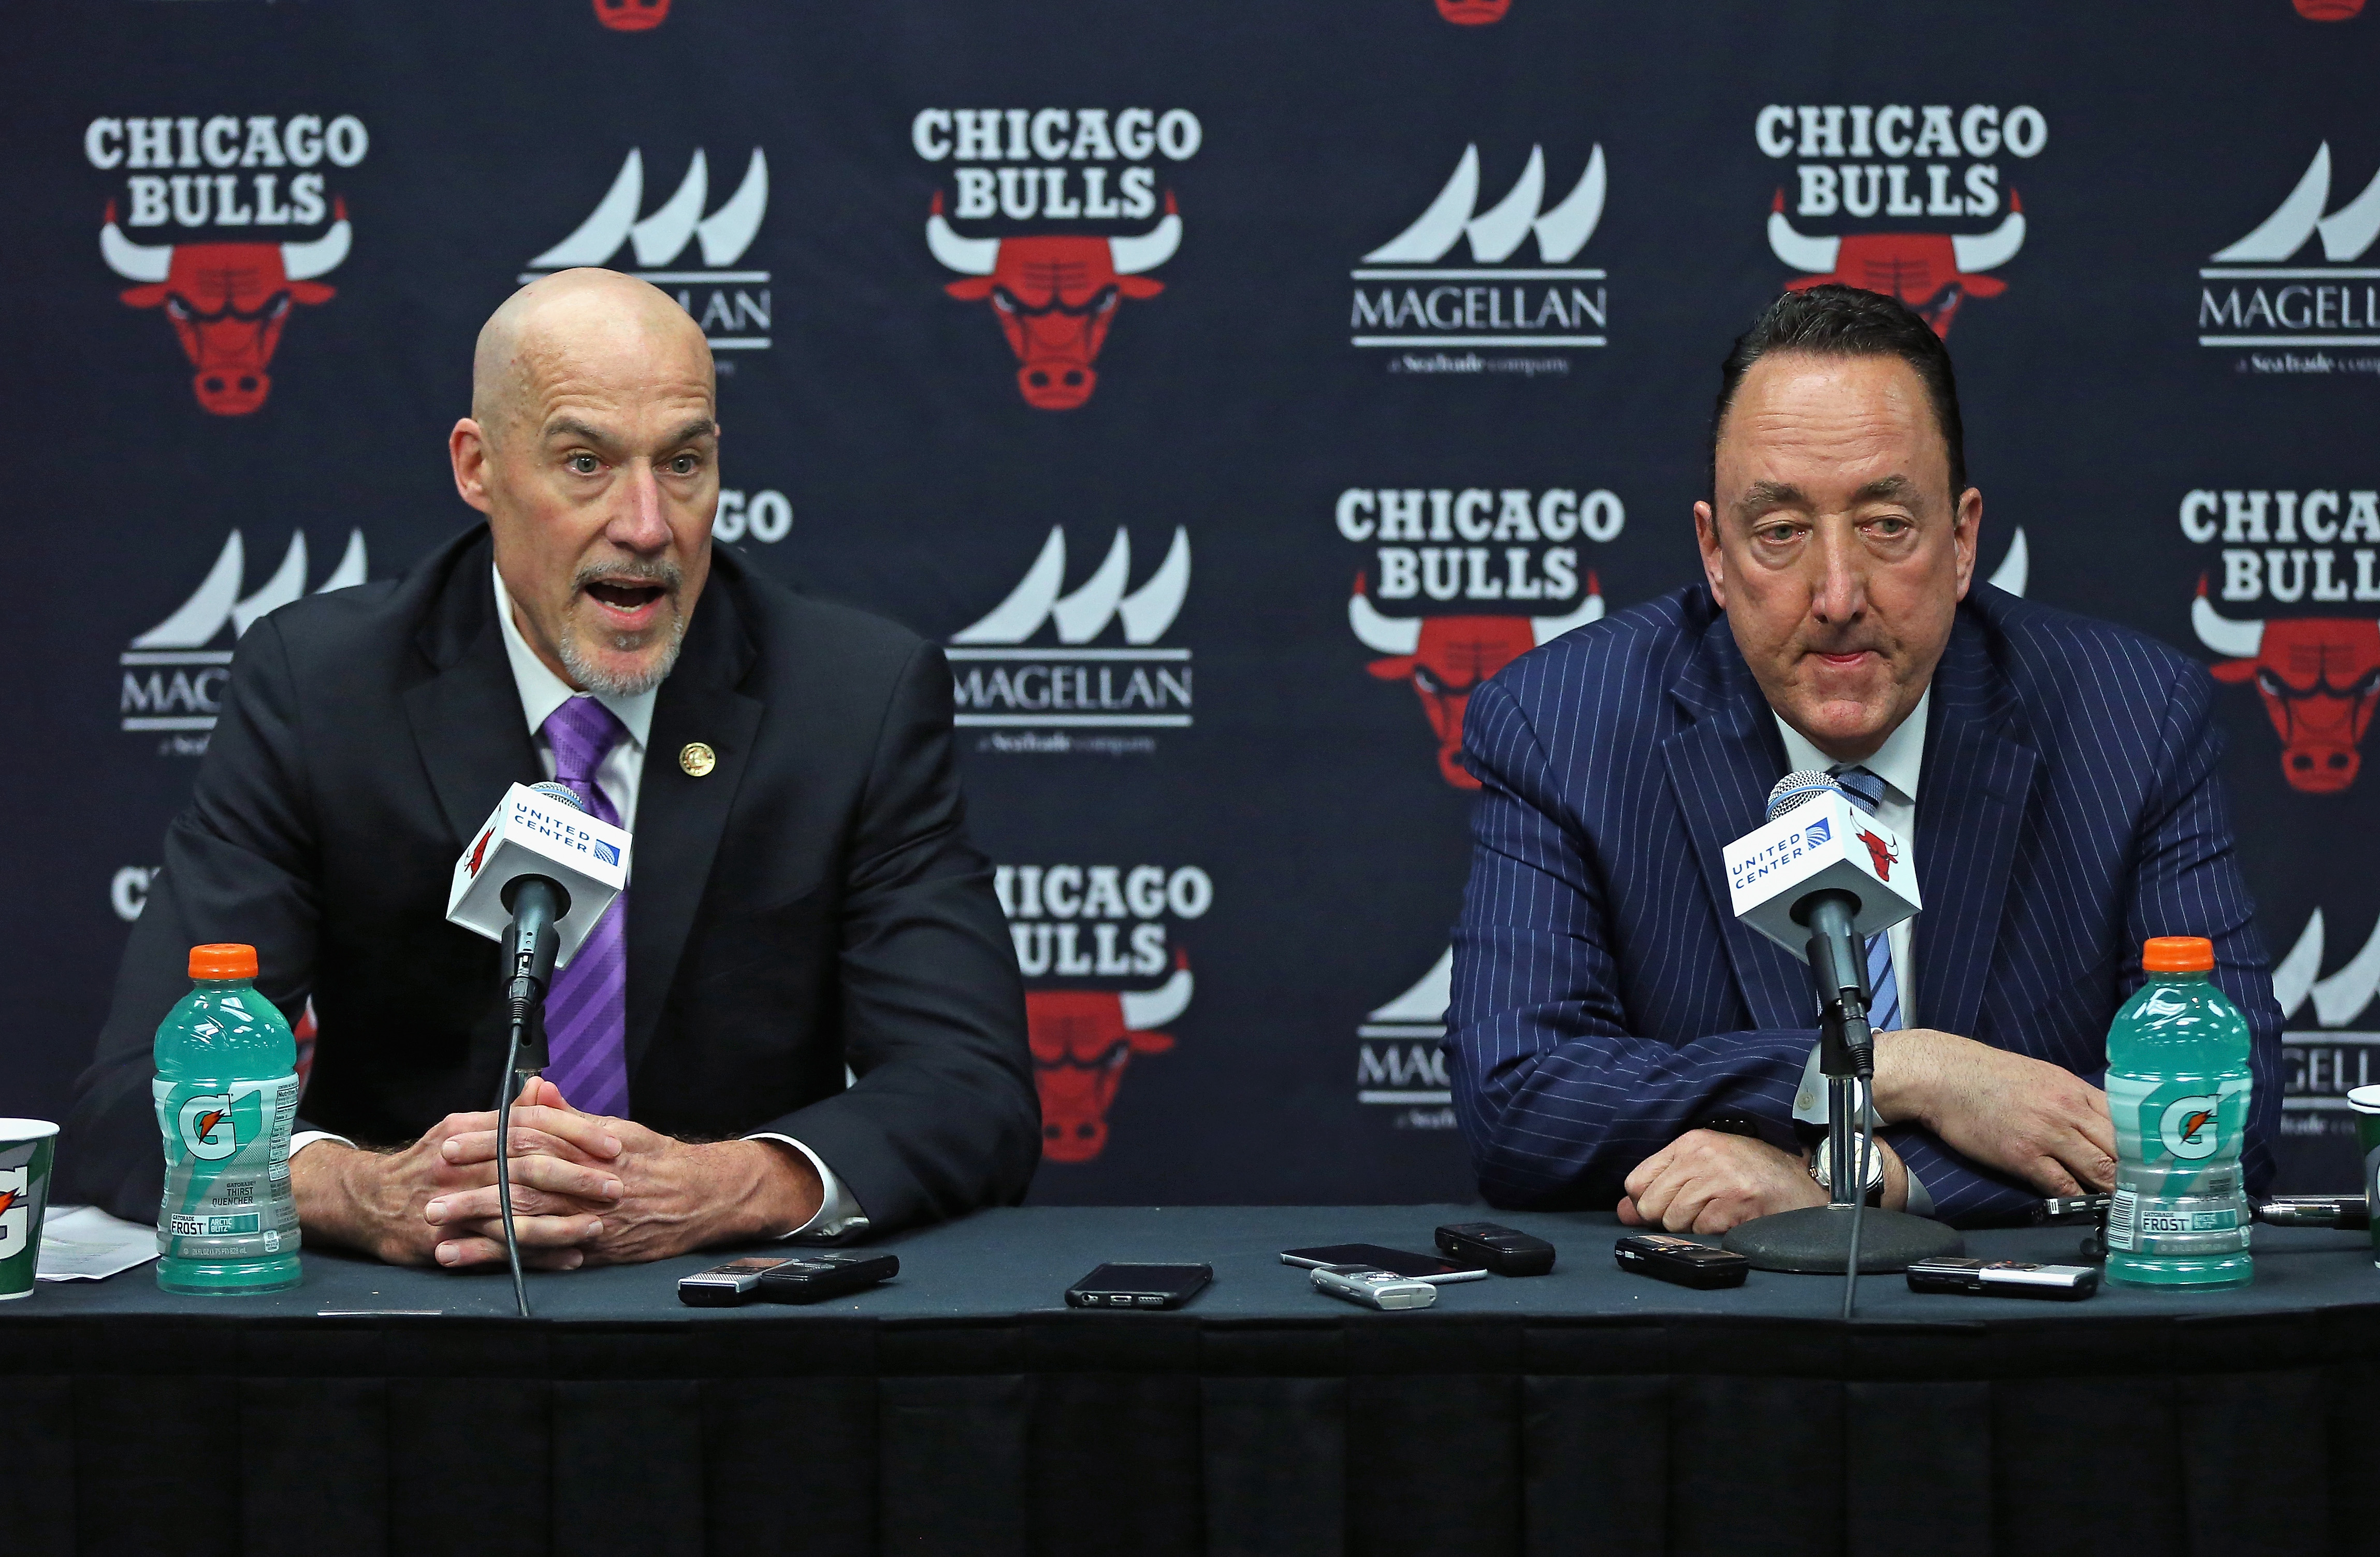 There have been rumblings that change is coming to the Bulls' front office, which includes vice president John Paxson (left) and general manager Gar Forman. Should you dare believe it?